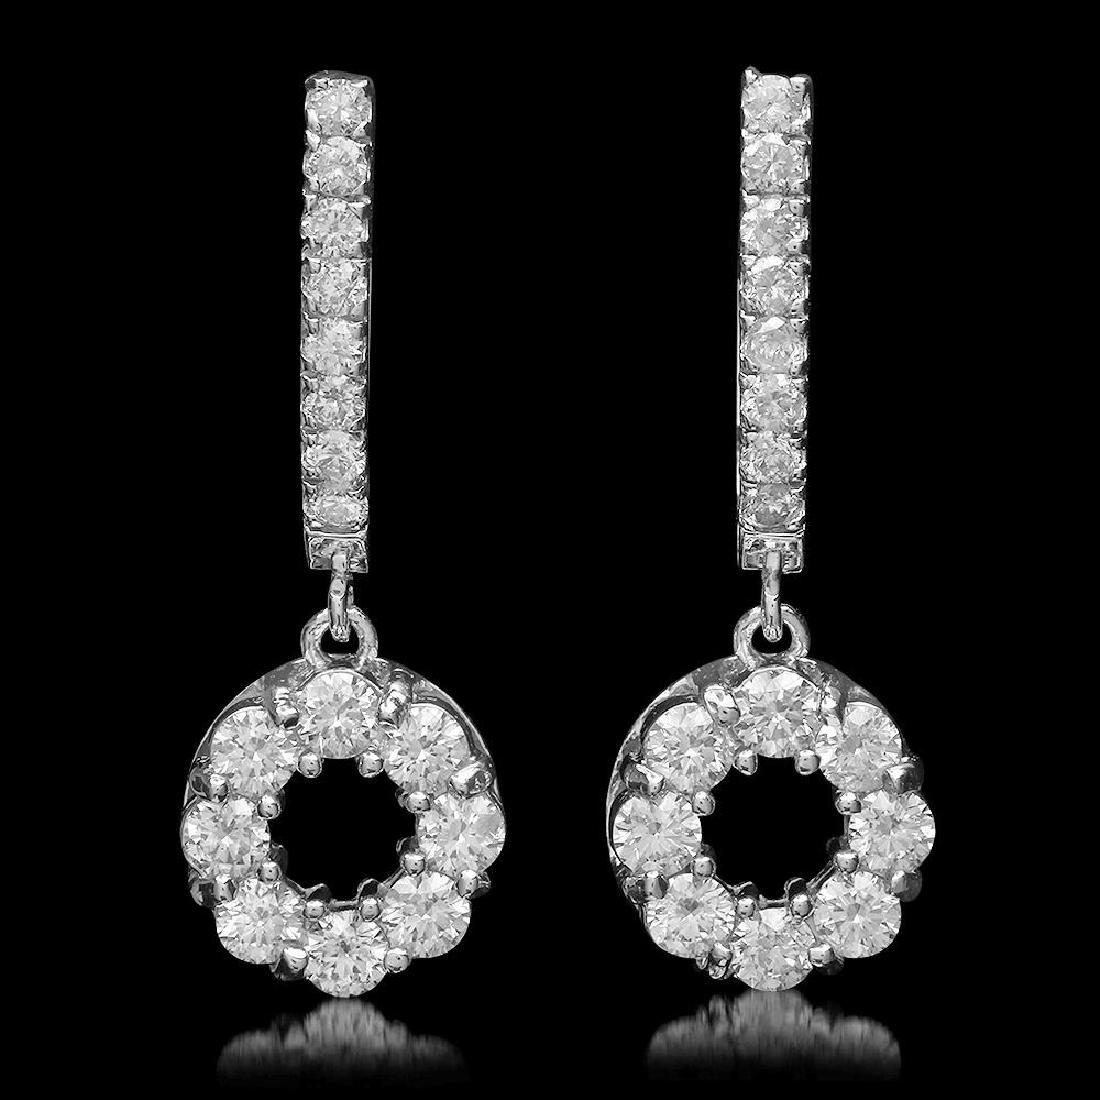 14K Gold 1.78ct Diamond Earrings